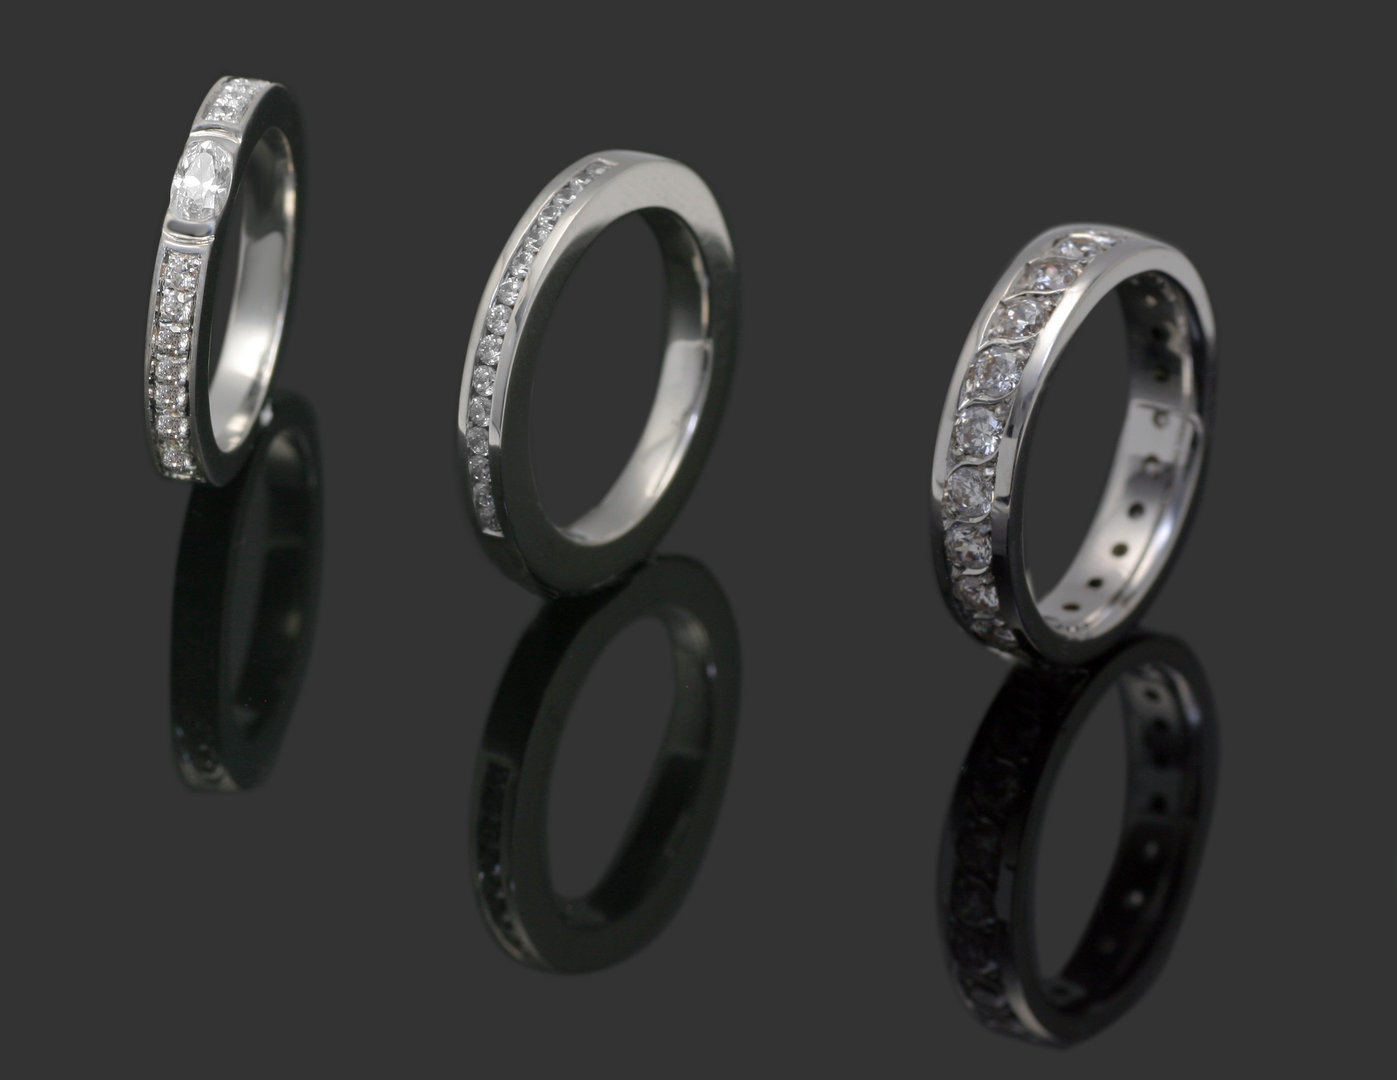 Trio of silver rings